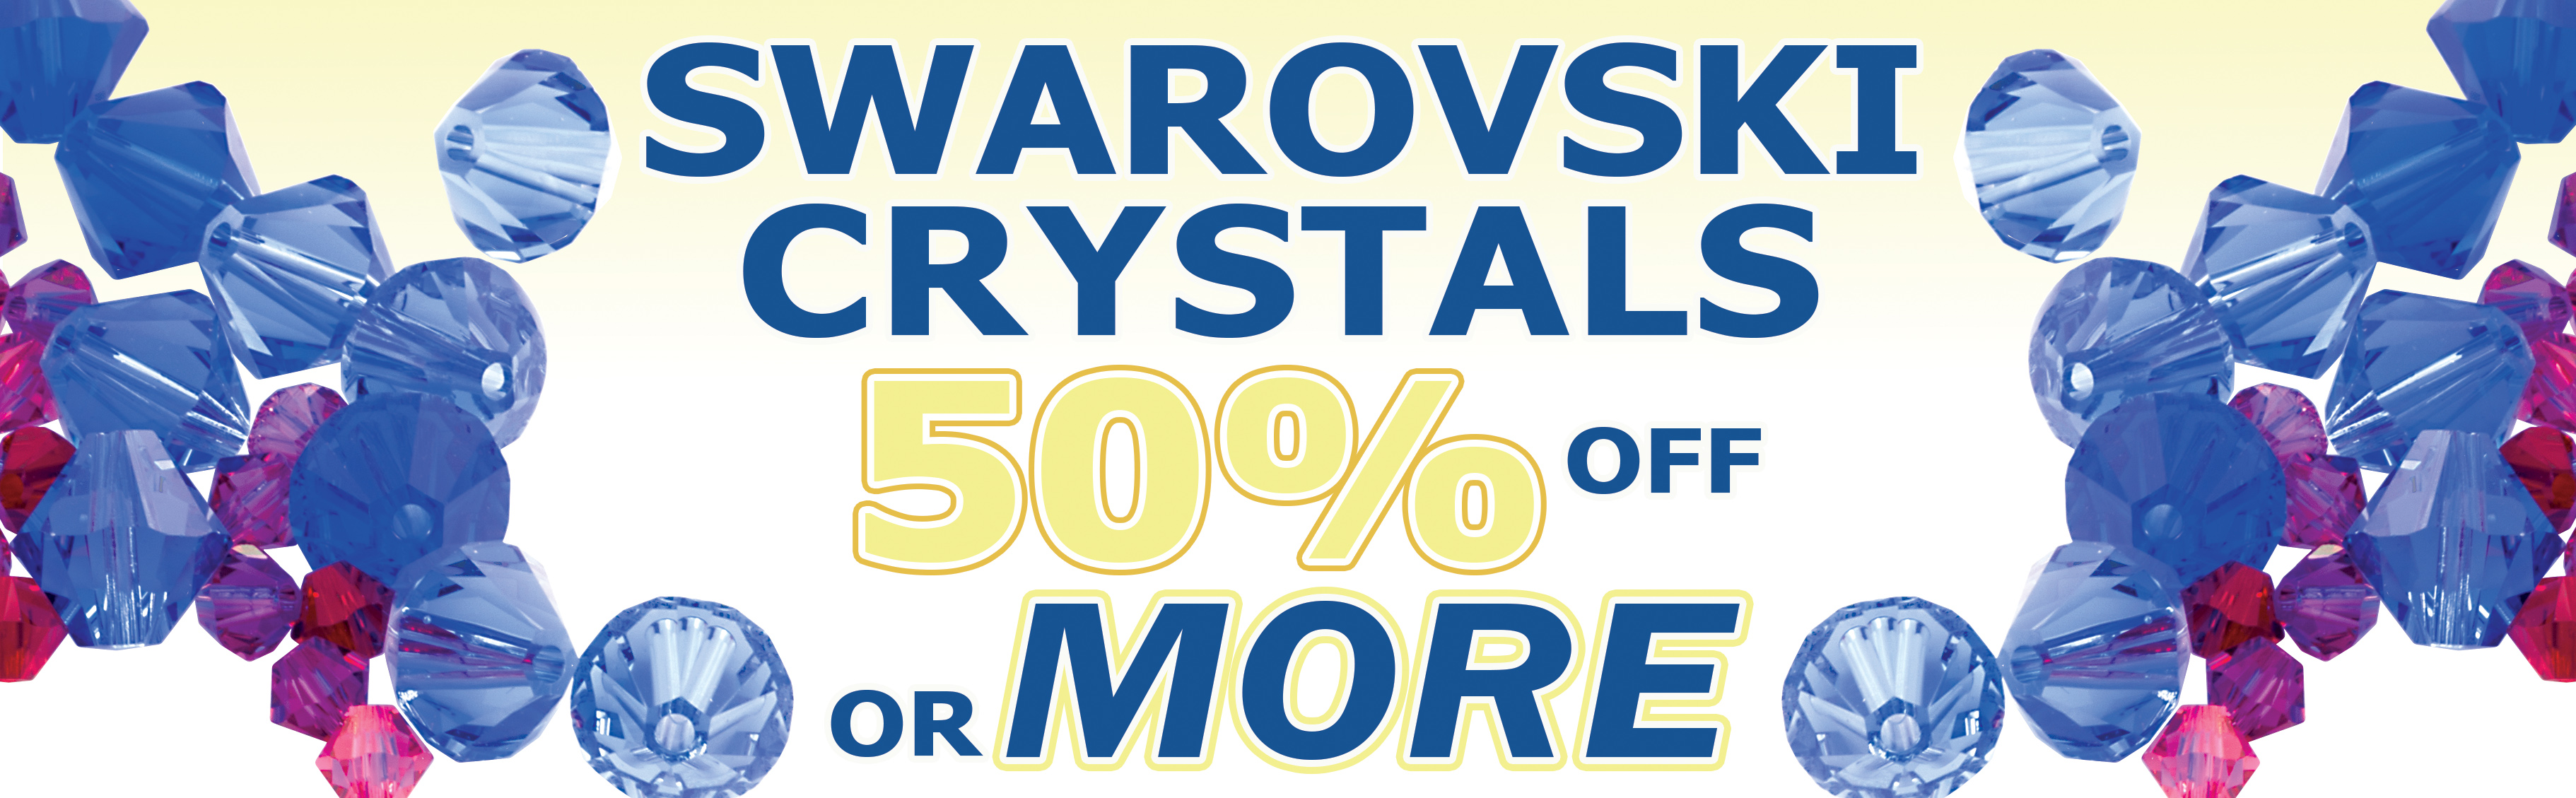 All SWAROVSKI 50% OFF OR MORE